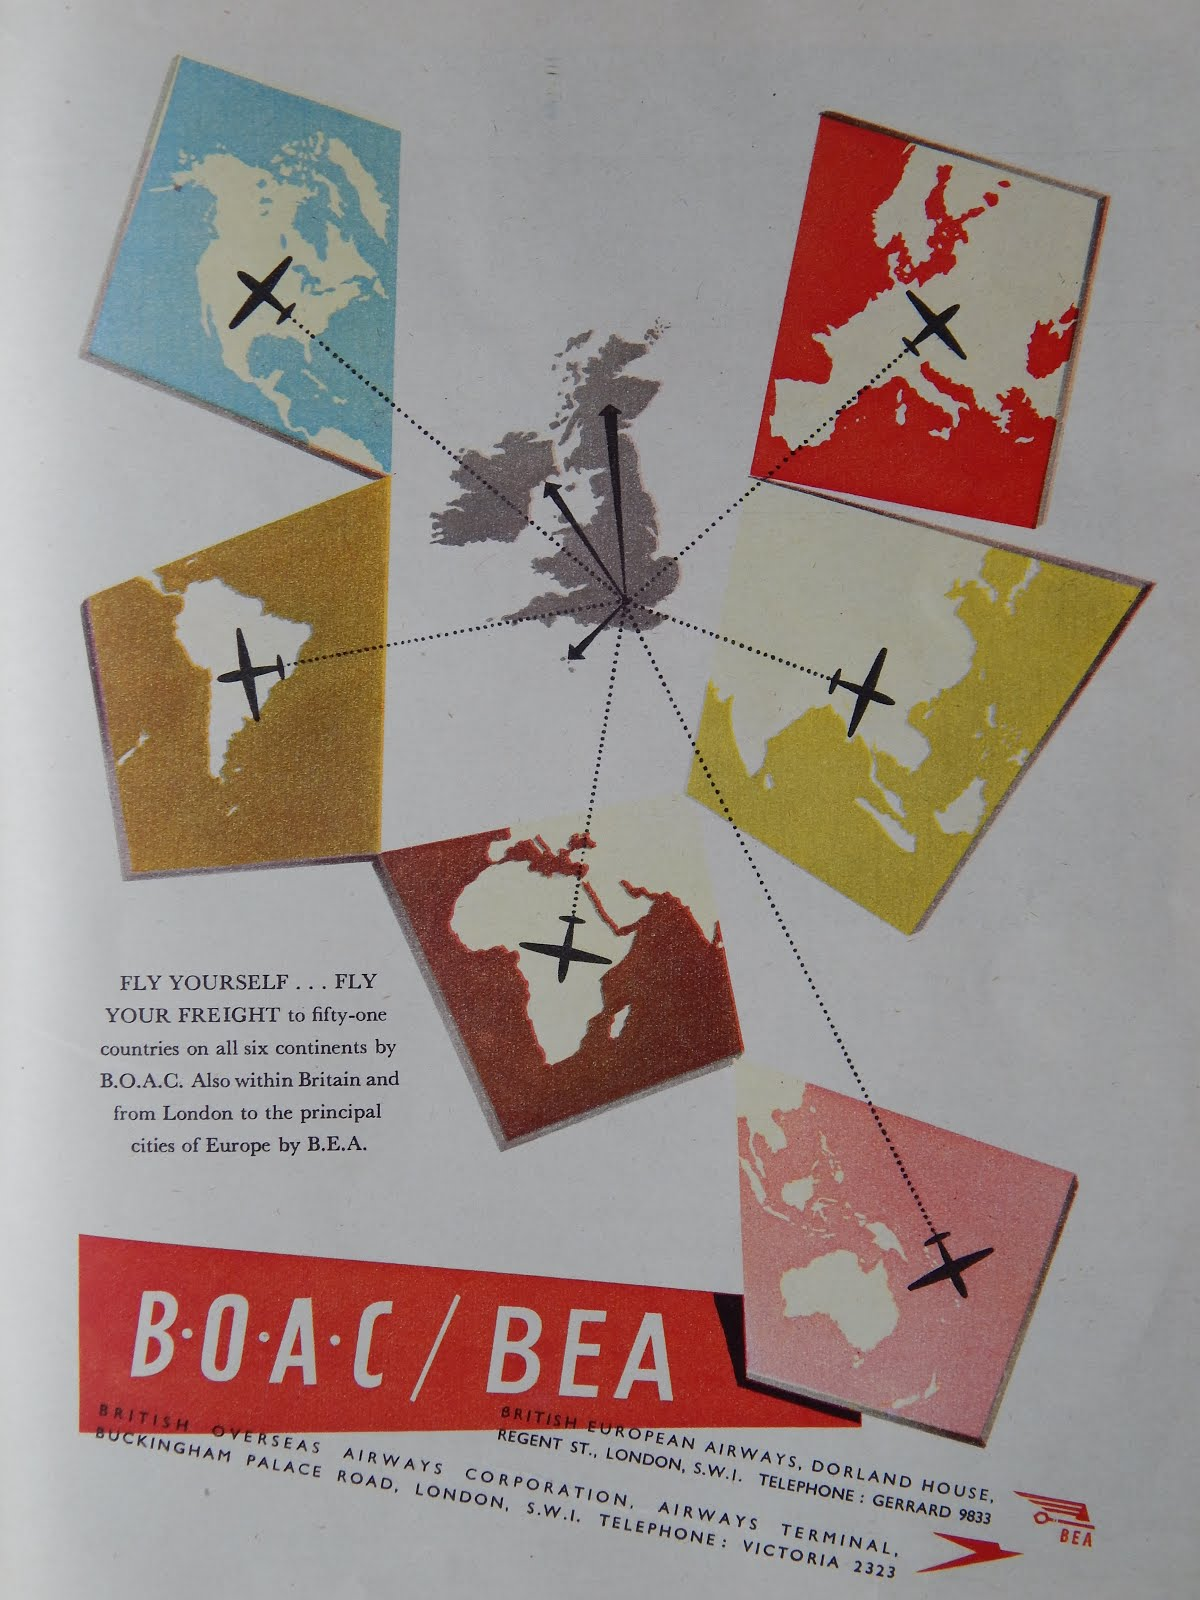 Remember BOAC and BEA?